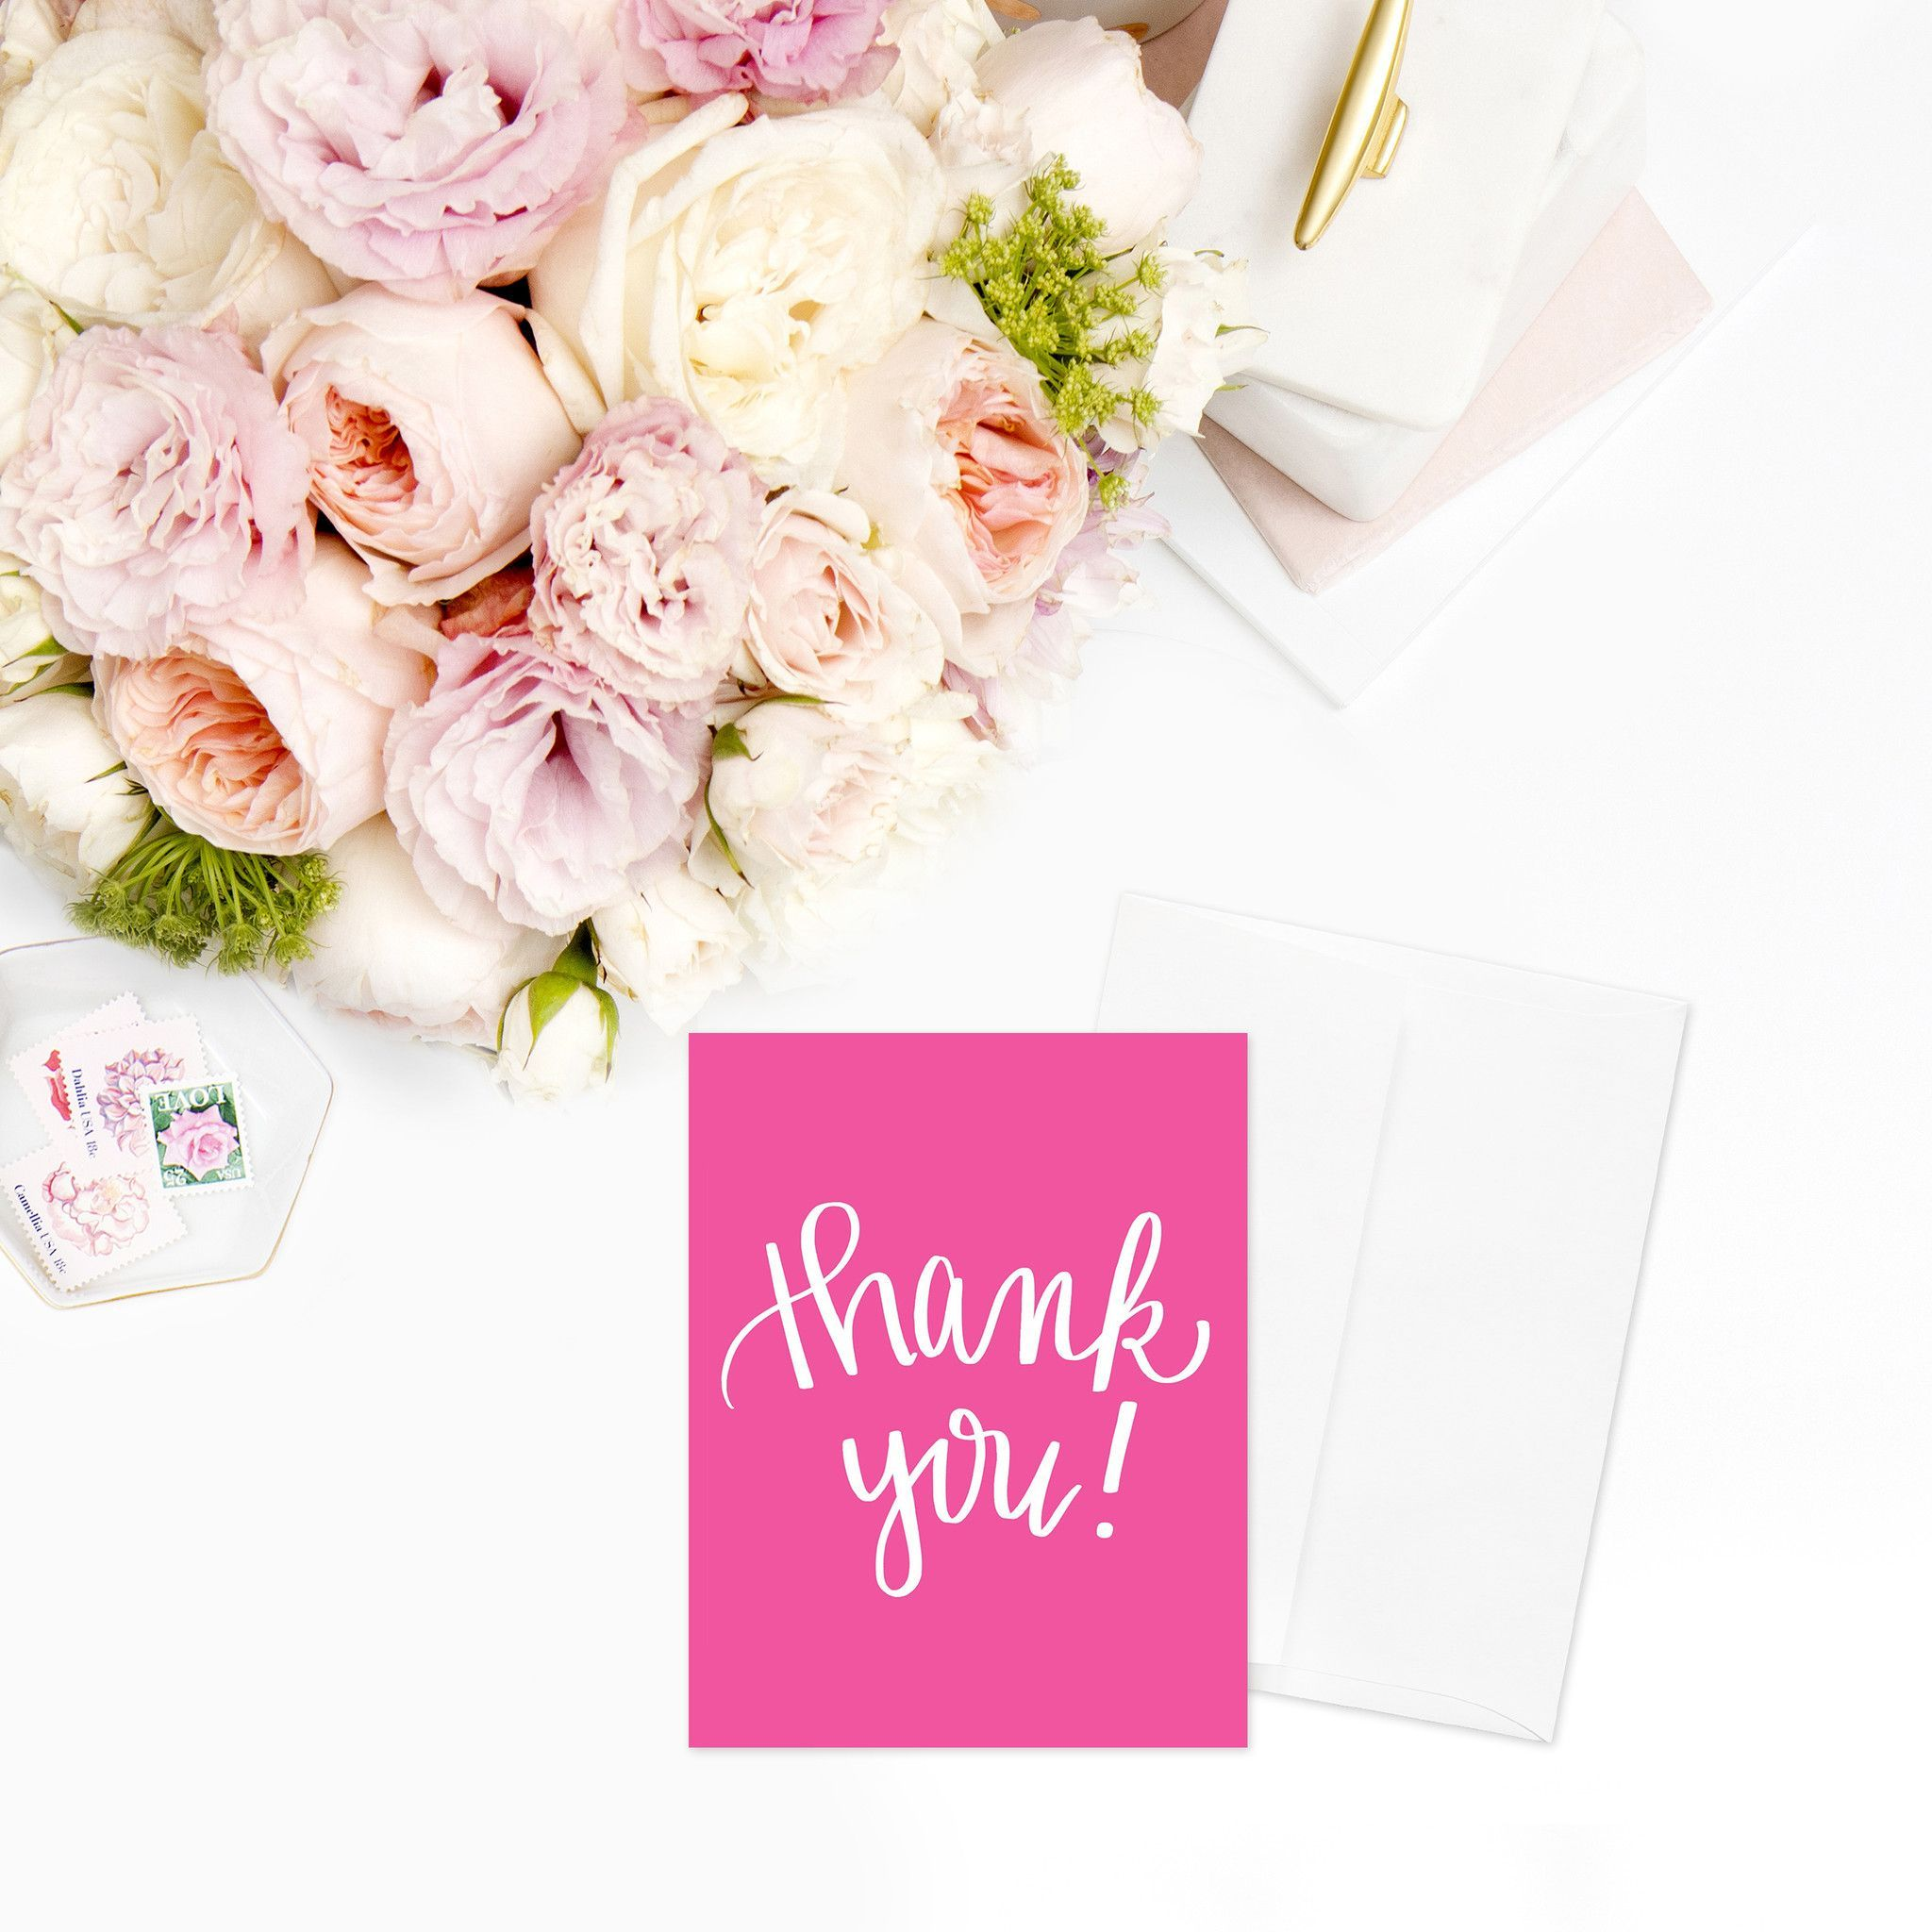 Thank You A2 Greeting Card Pinterest Products